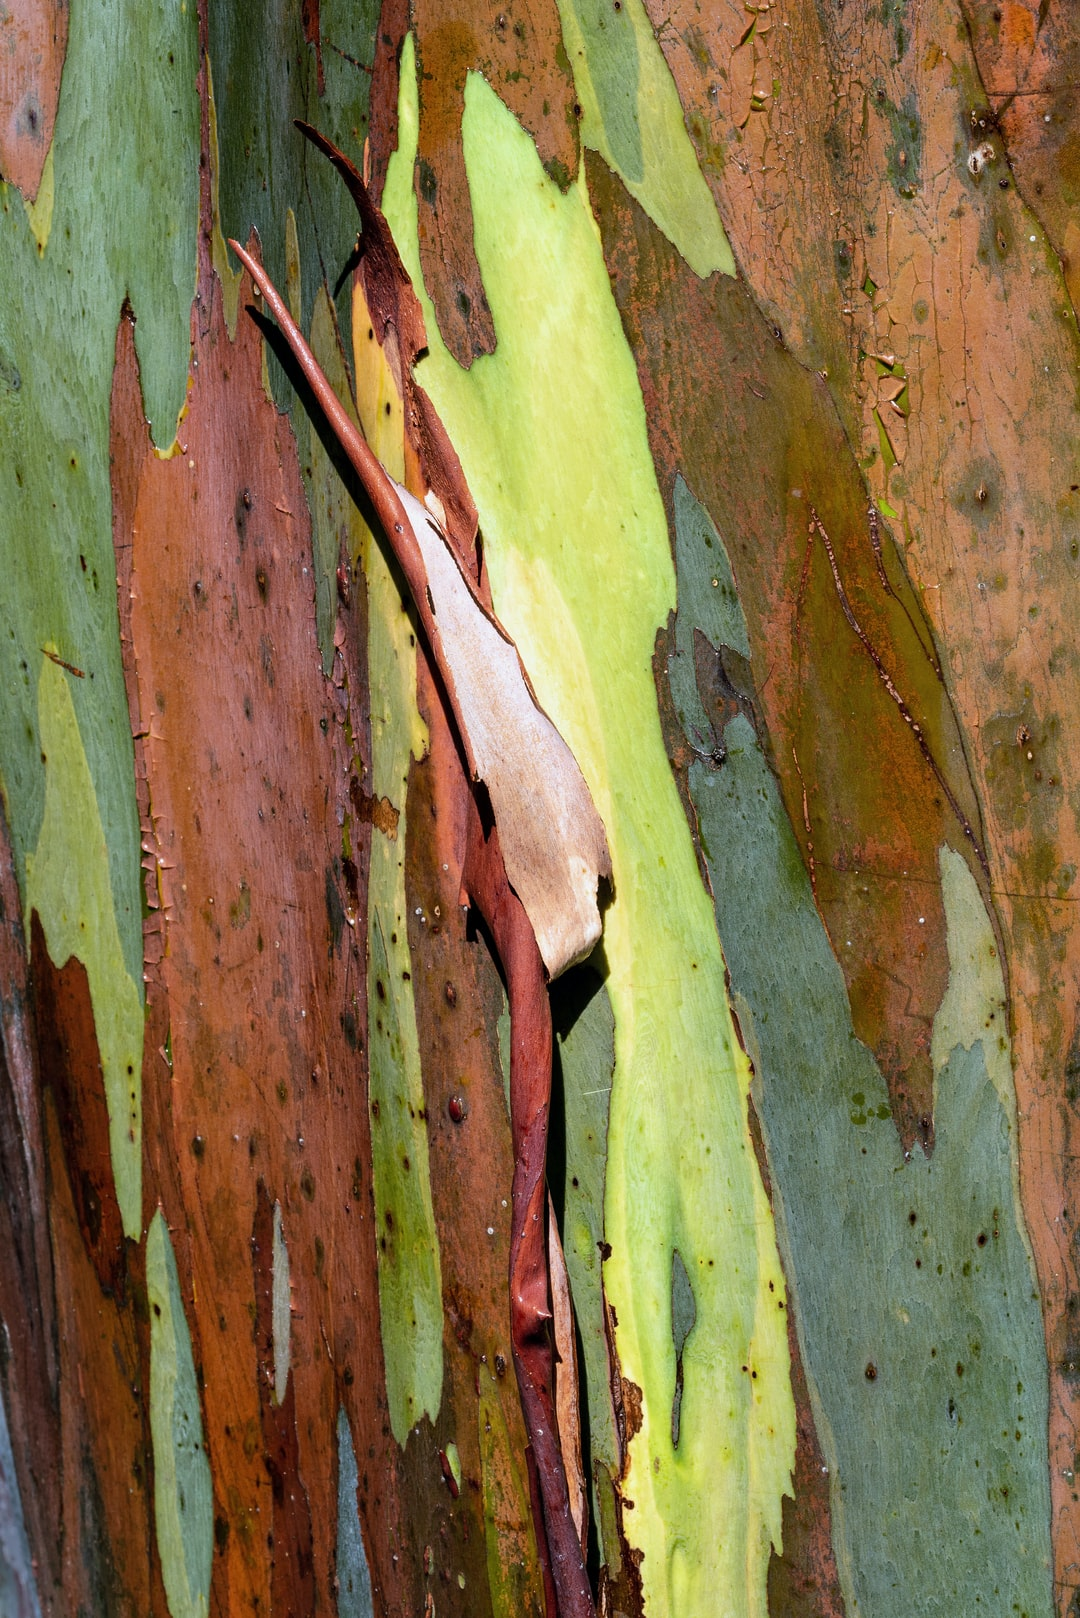 Bark of a Rainbow Gum tree Eucalyptus deglupta. This is a young tree, and they can be even more colourful than this.